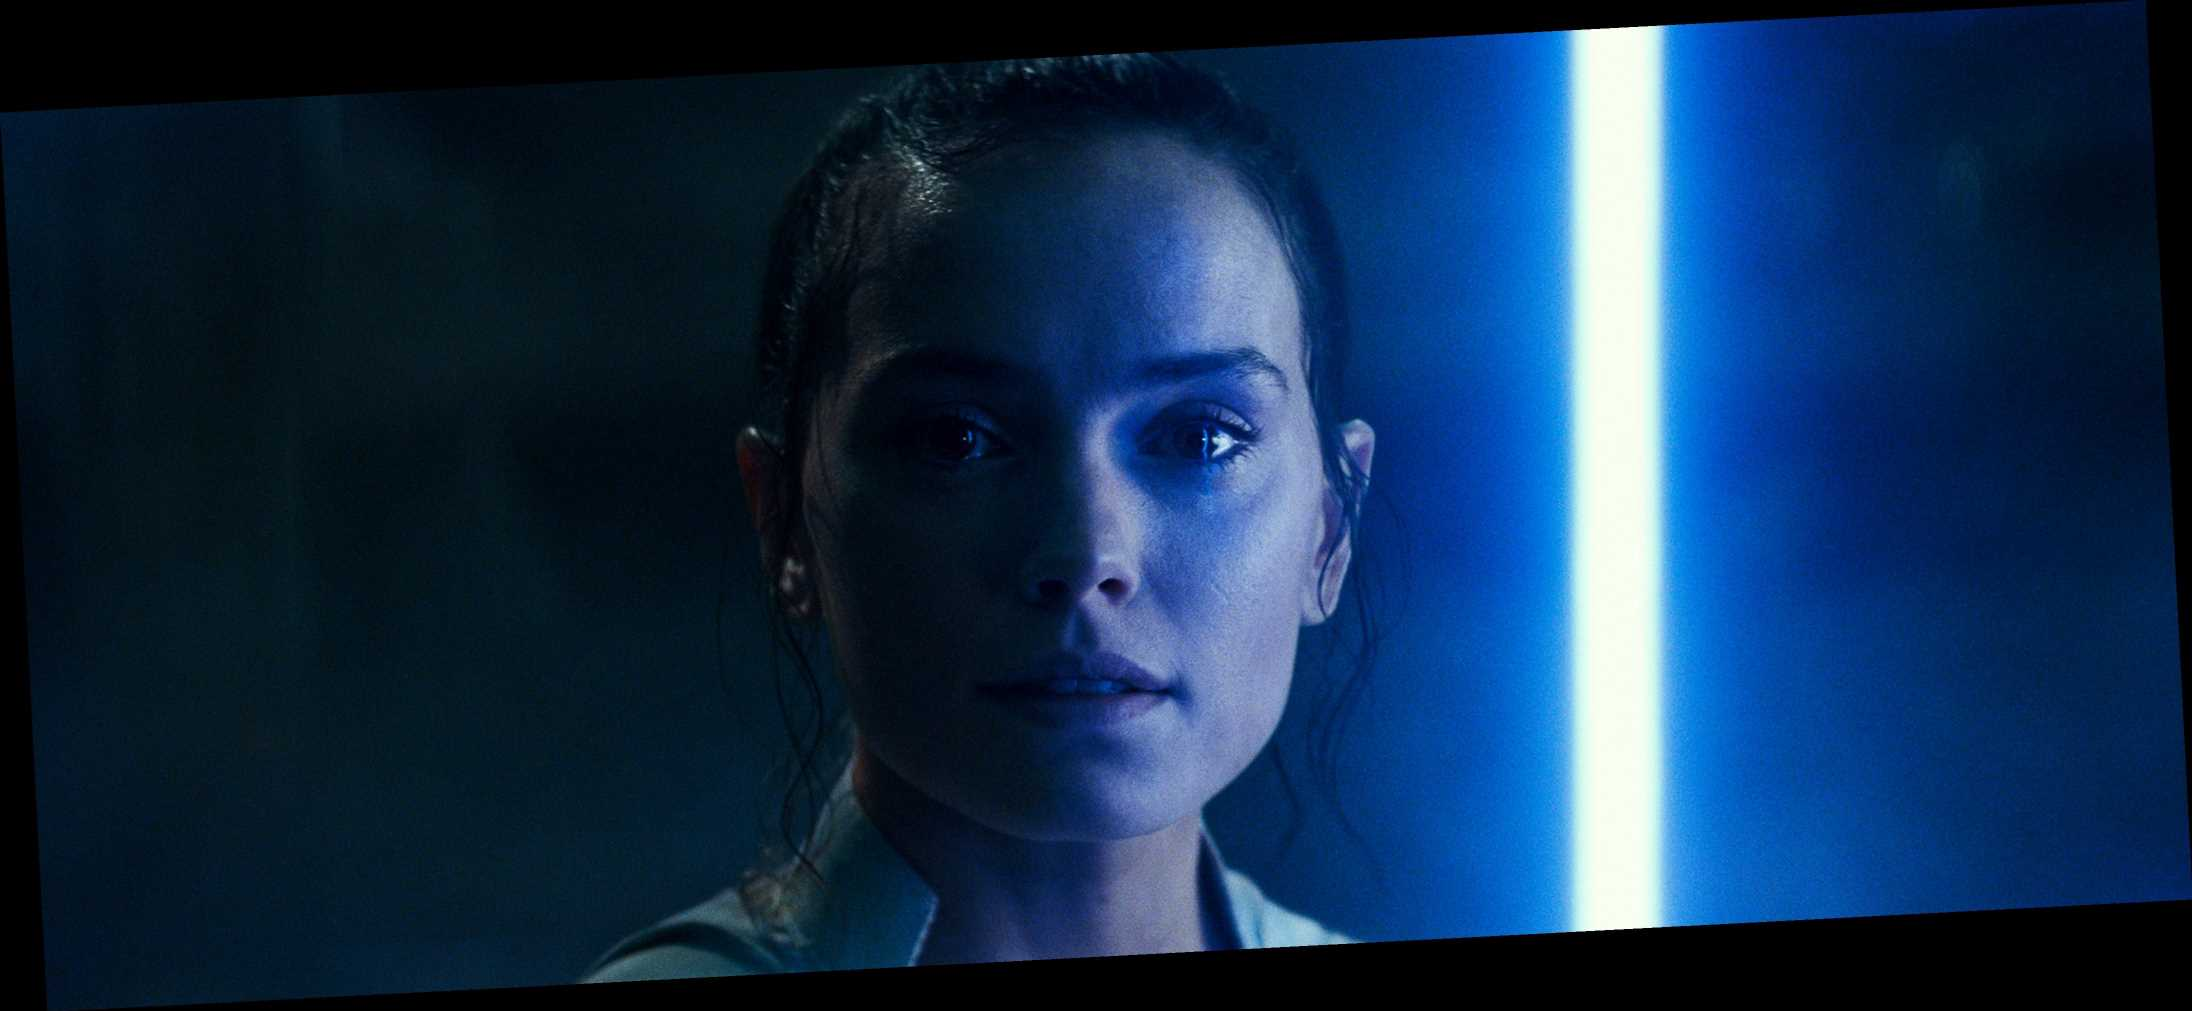 Rey Prepares for an Explosive Battle in the Final Trailer for Star Wars: The Rise of Skywalker